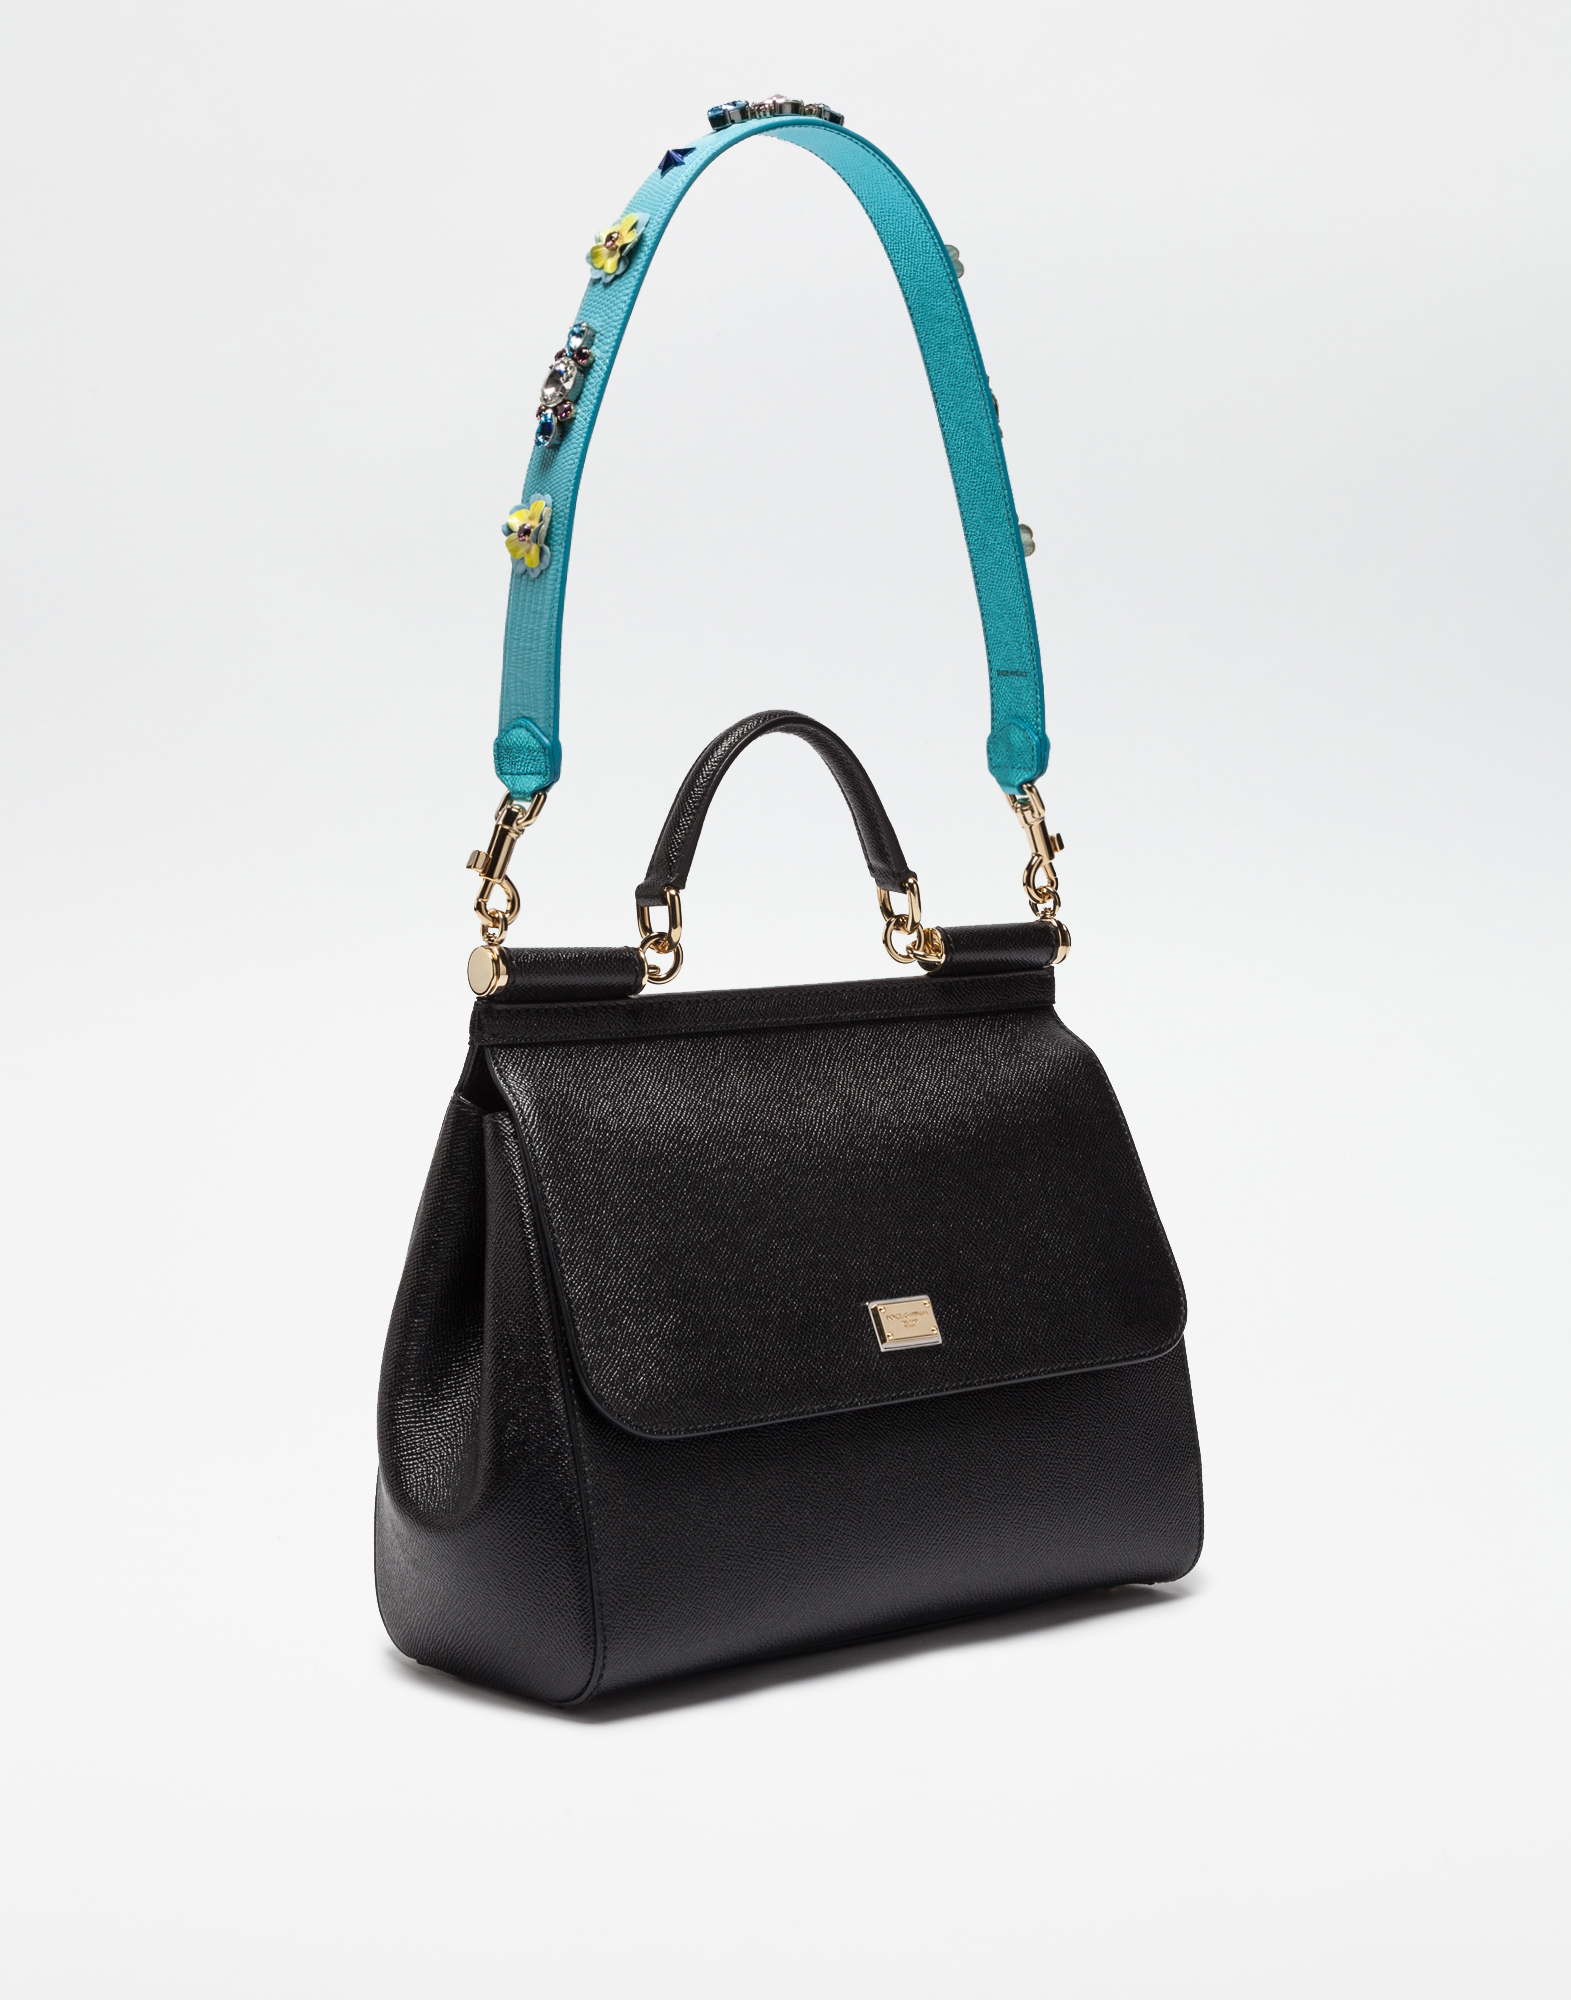 Dolce & Gabbana STRAP IN DAUPHINE LEATHER WITH APPLIQUÉS